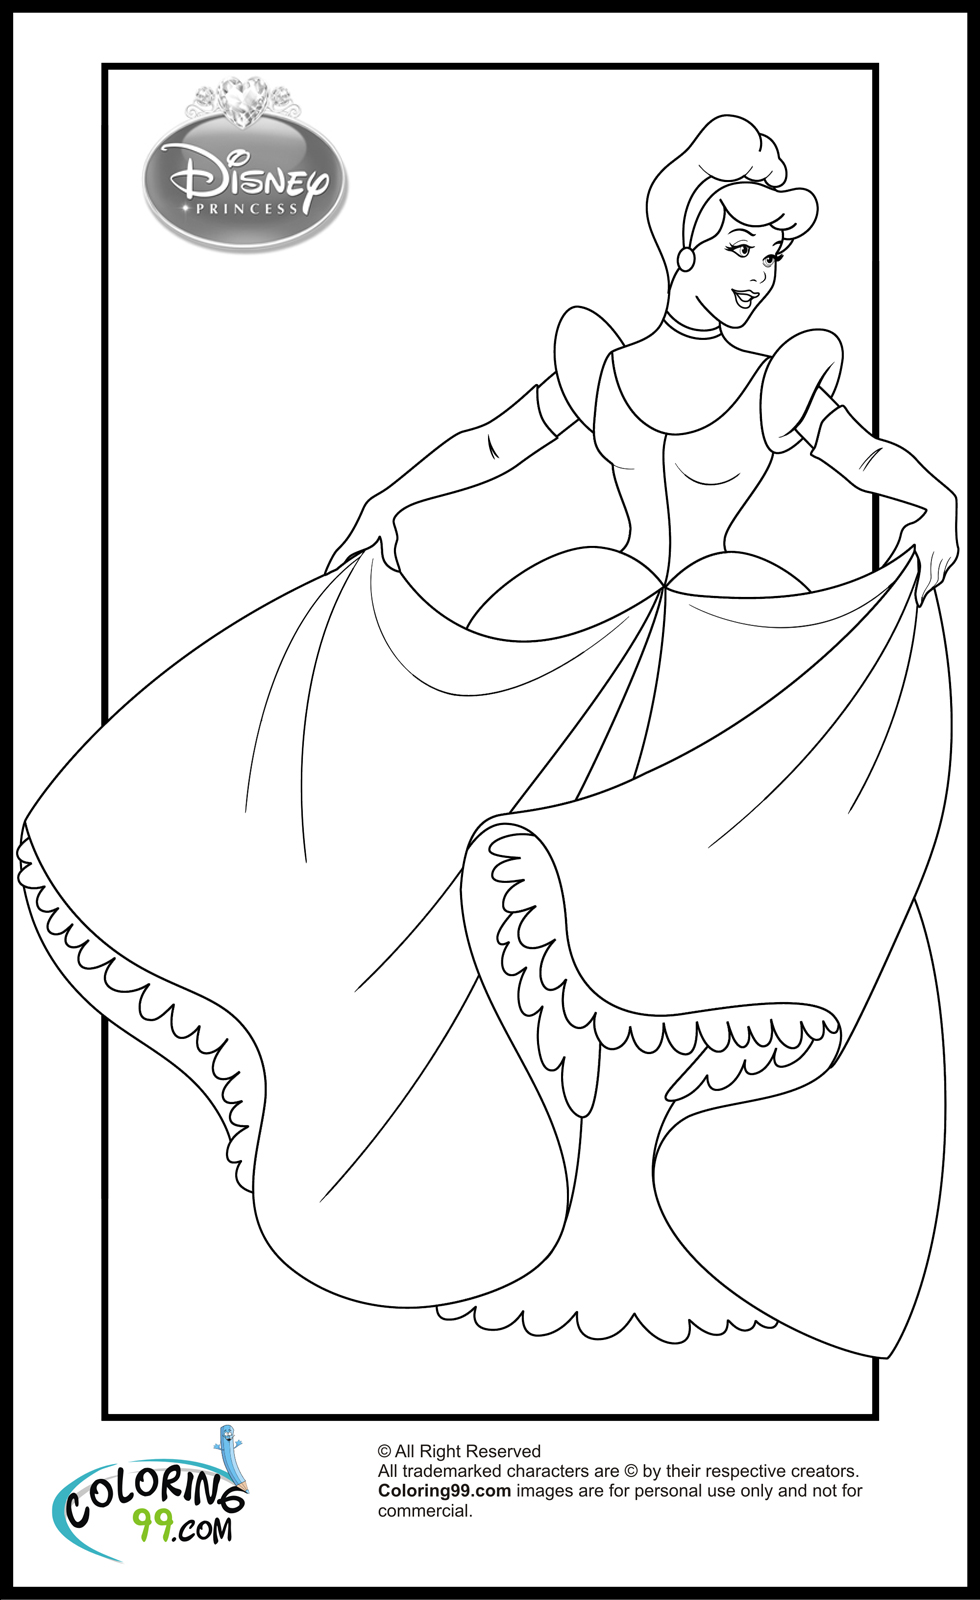 coloring pages of cinderella free printable cinderella coloring pages for kids cool2bkids cinderella of pages coloring